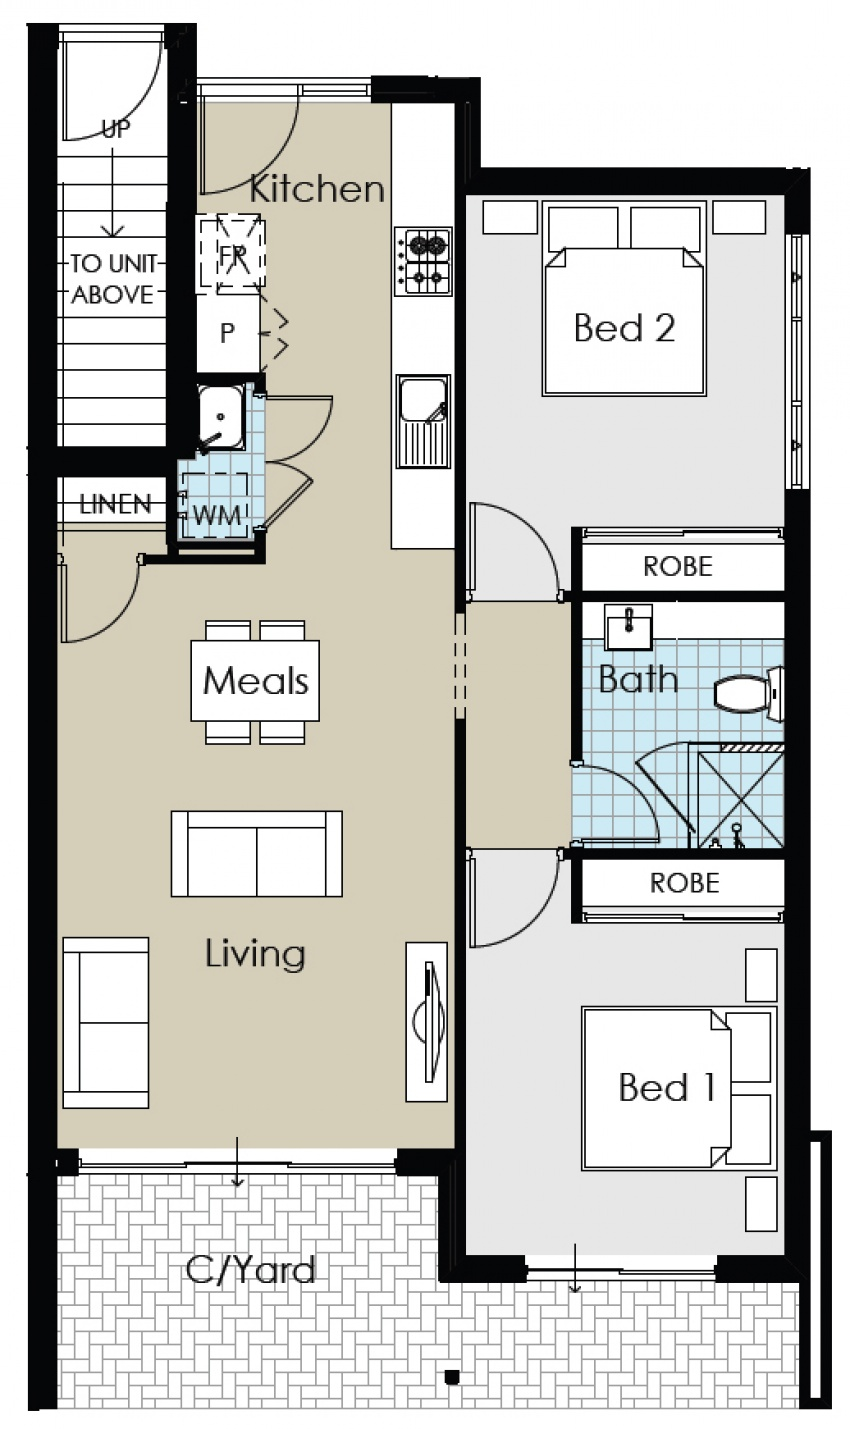 Unit 9 - Brand New Positive Cashflow Apartment